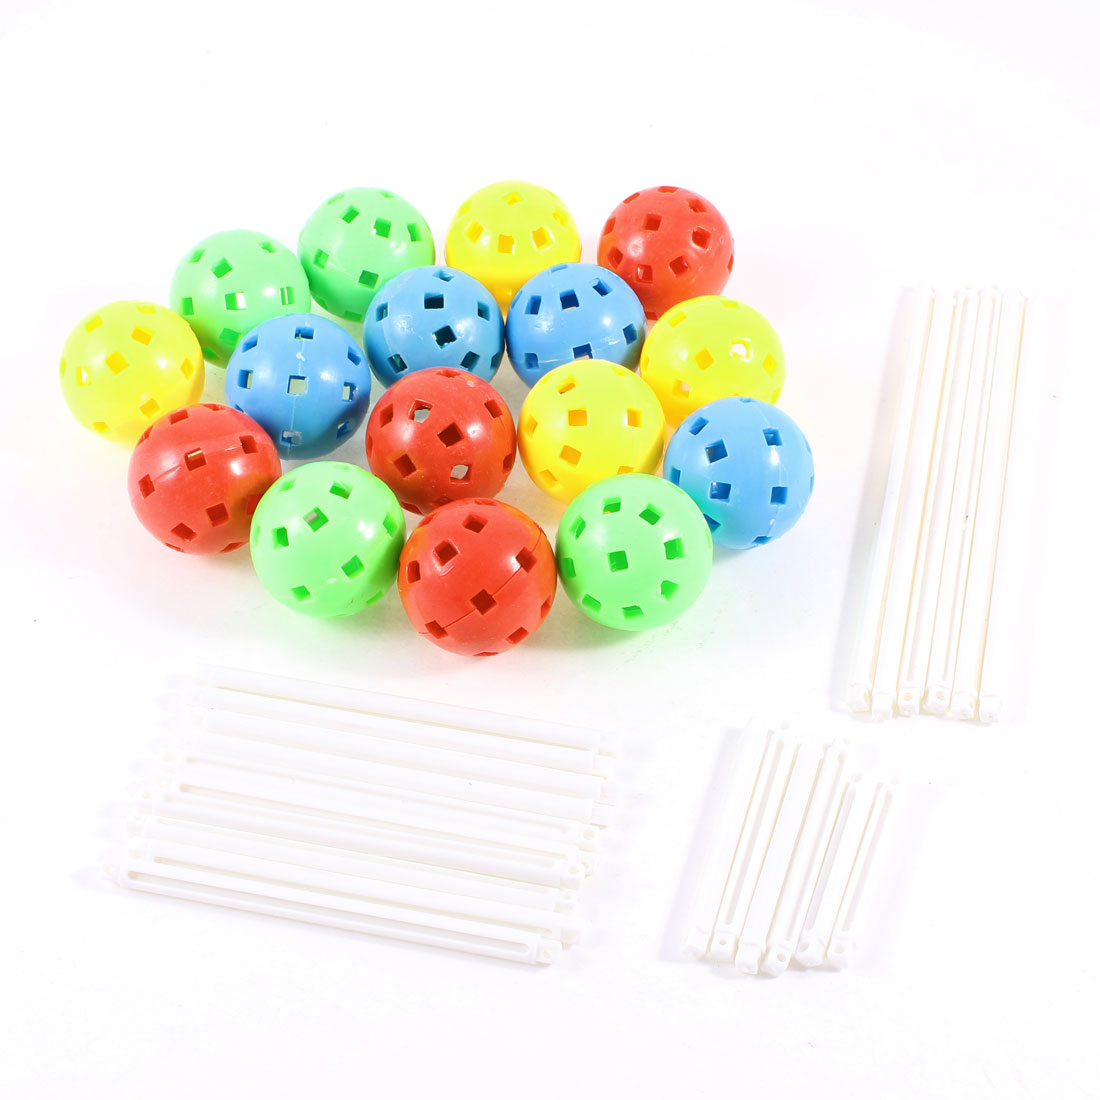 Plastic Colors Logic Training Magic Plugging Beads Toy for Children Kids